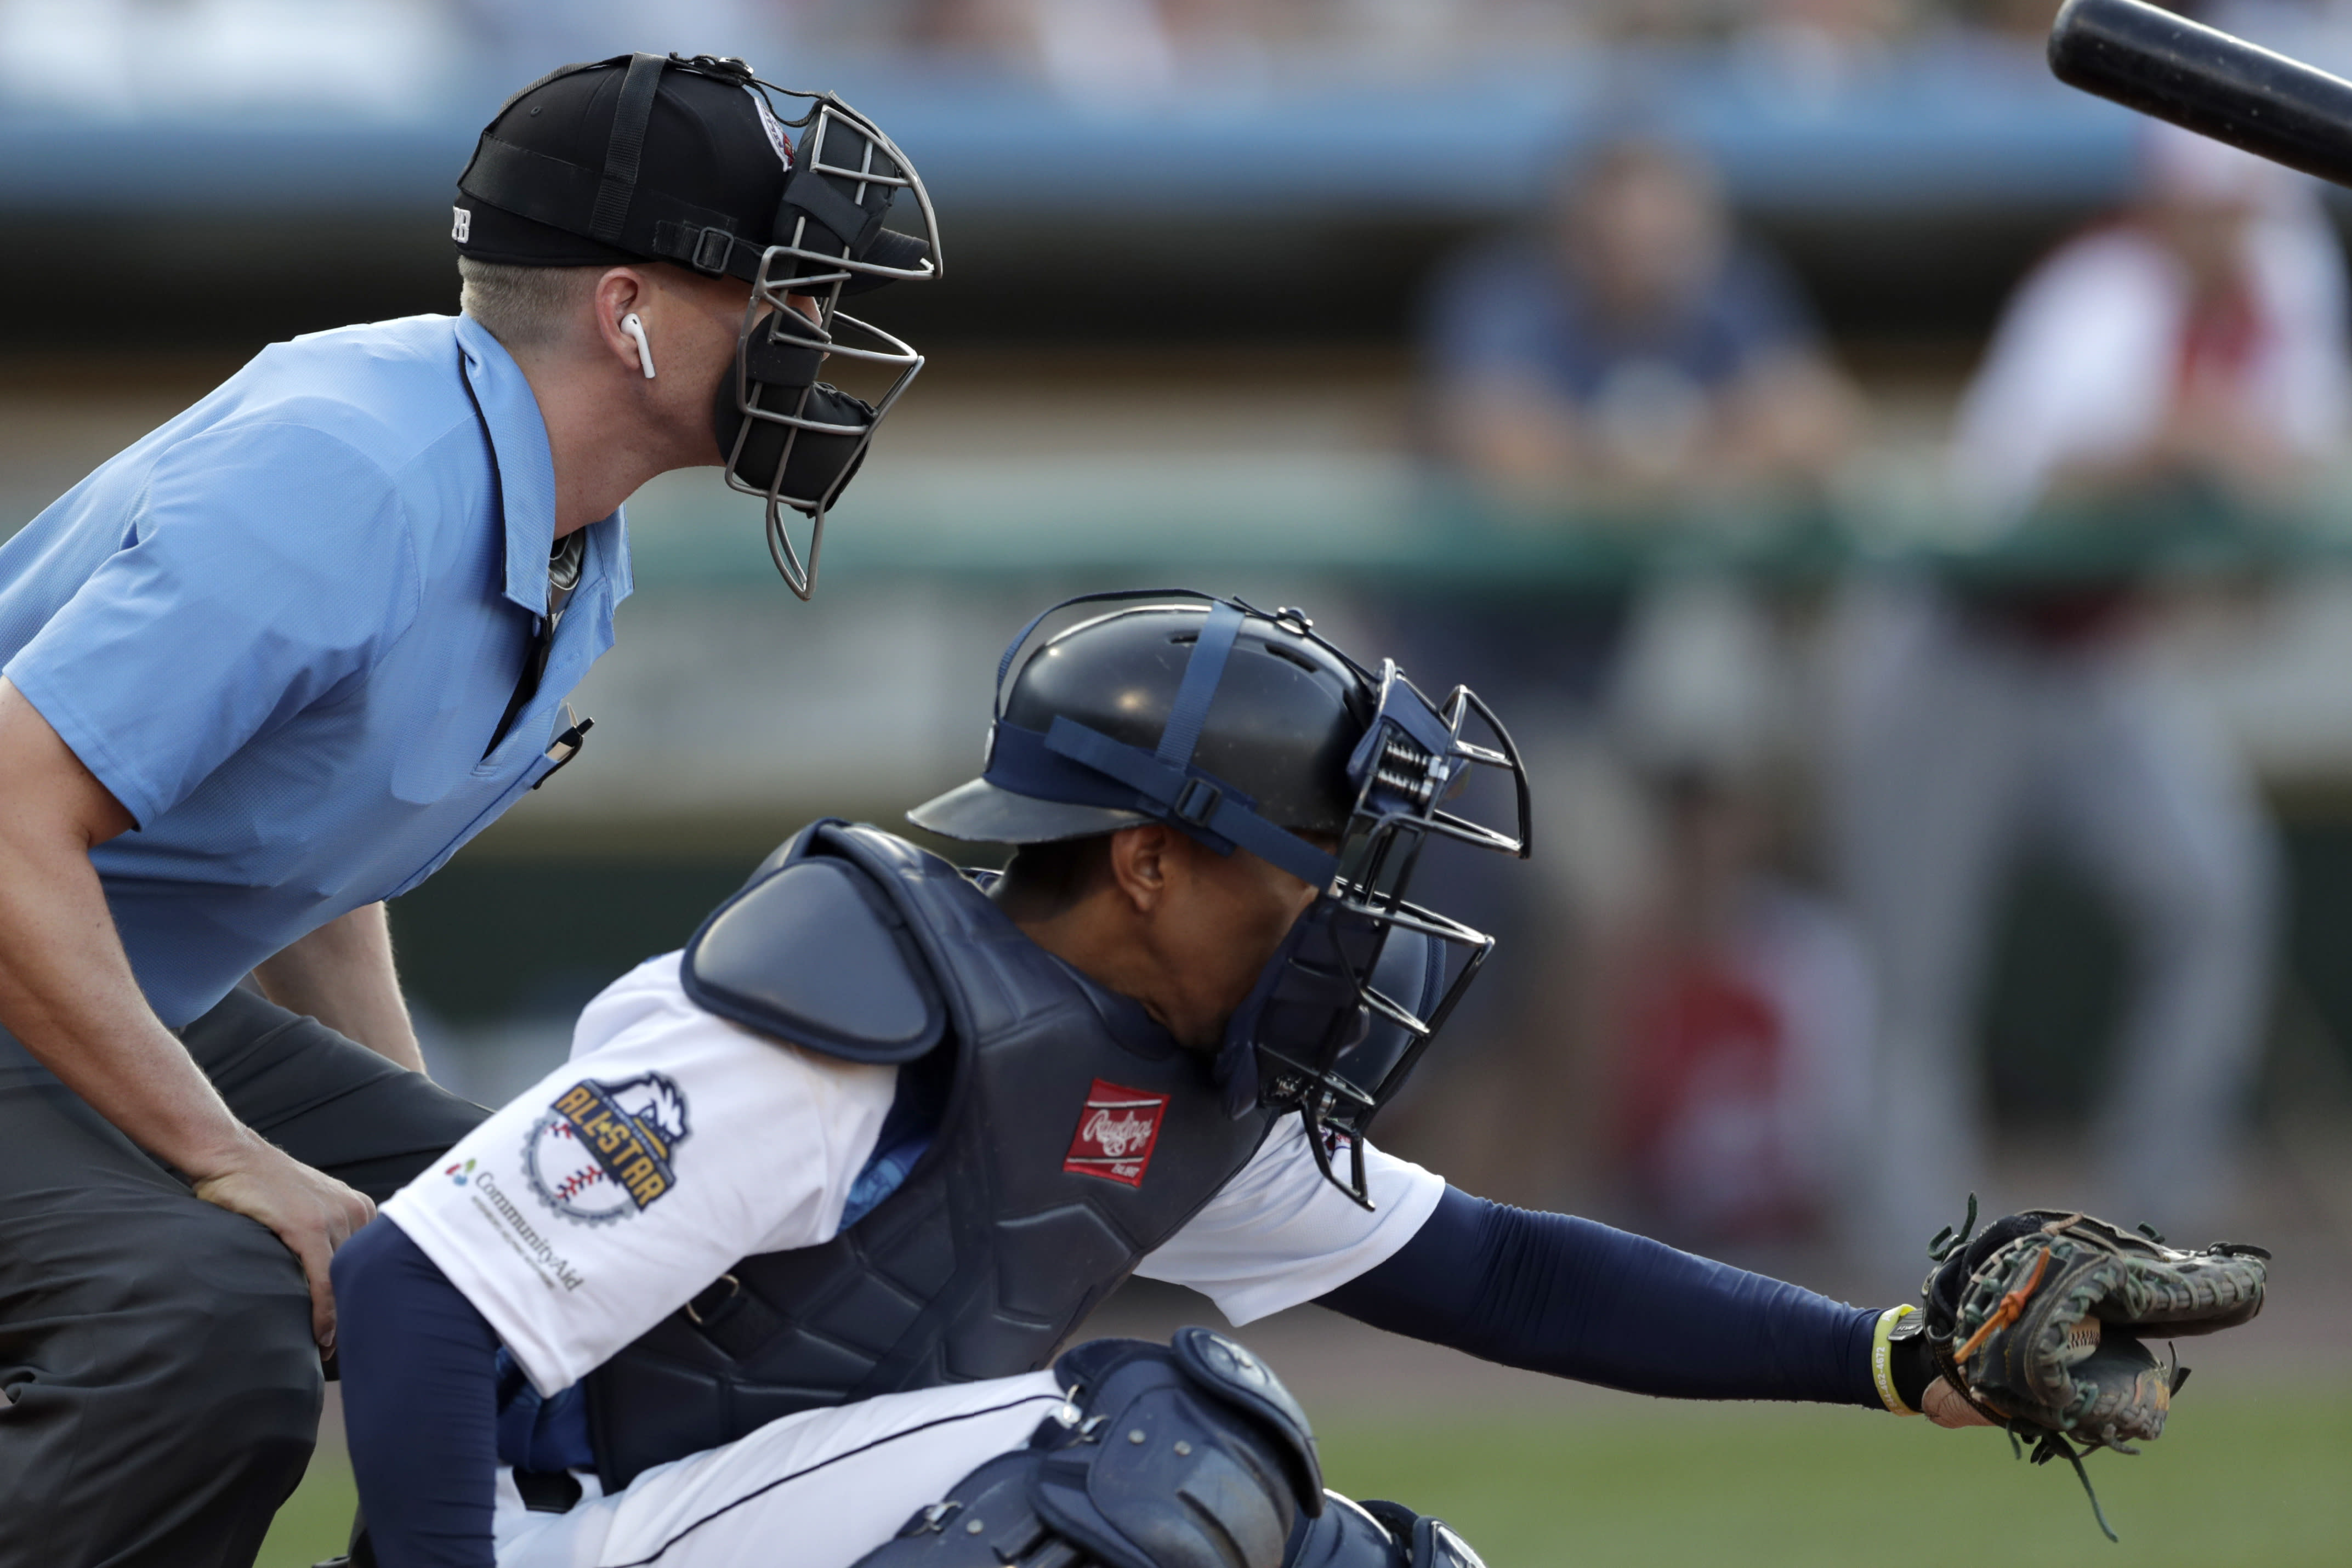 'Robot umpires' debuted in the Atlantic League All-Star game, here's what happened